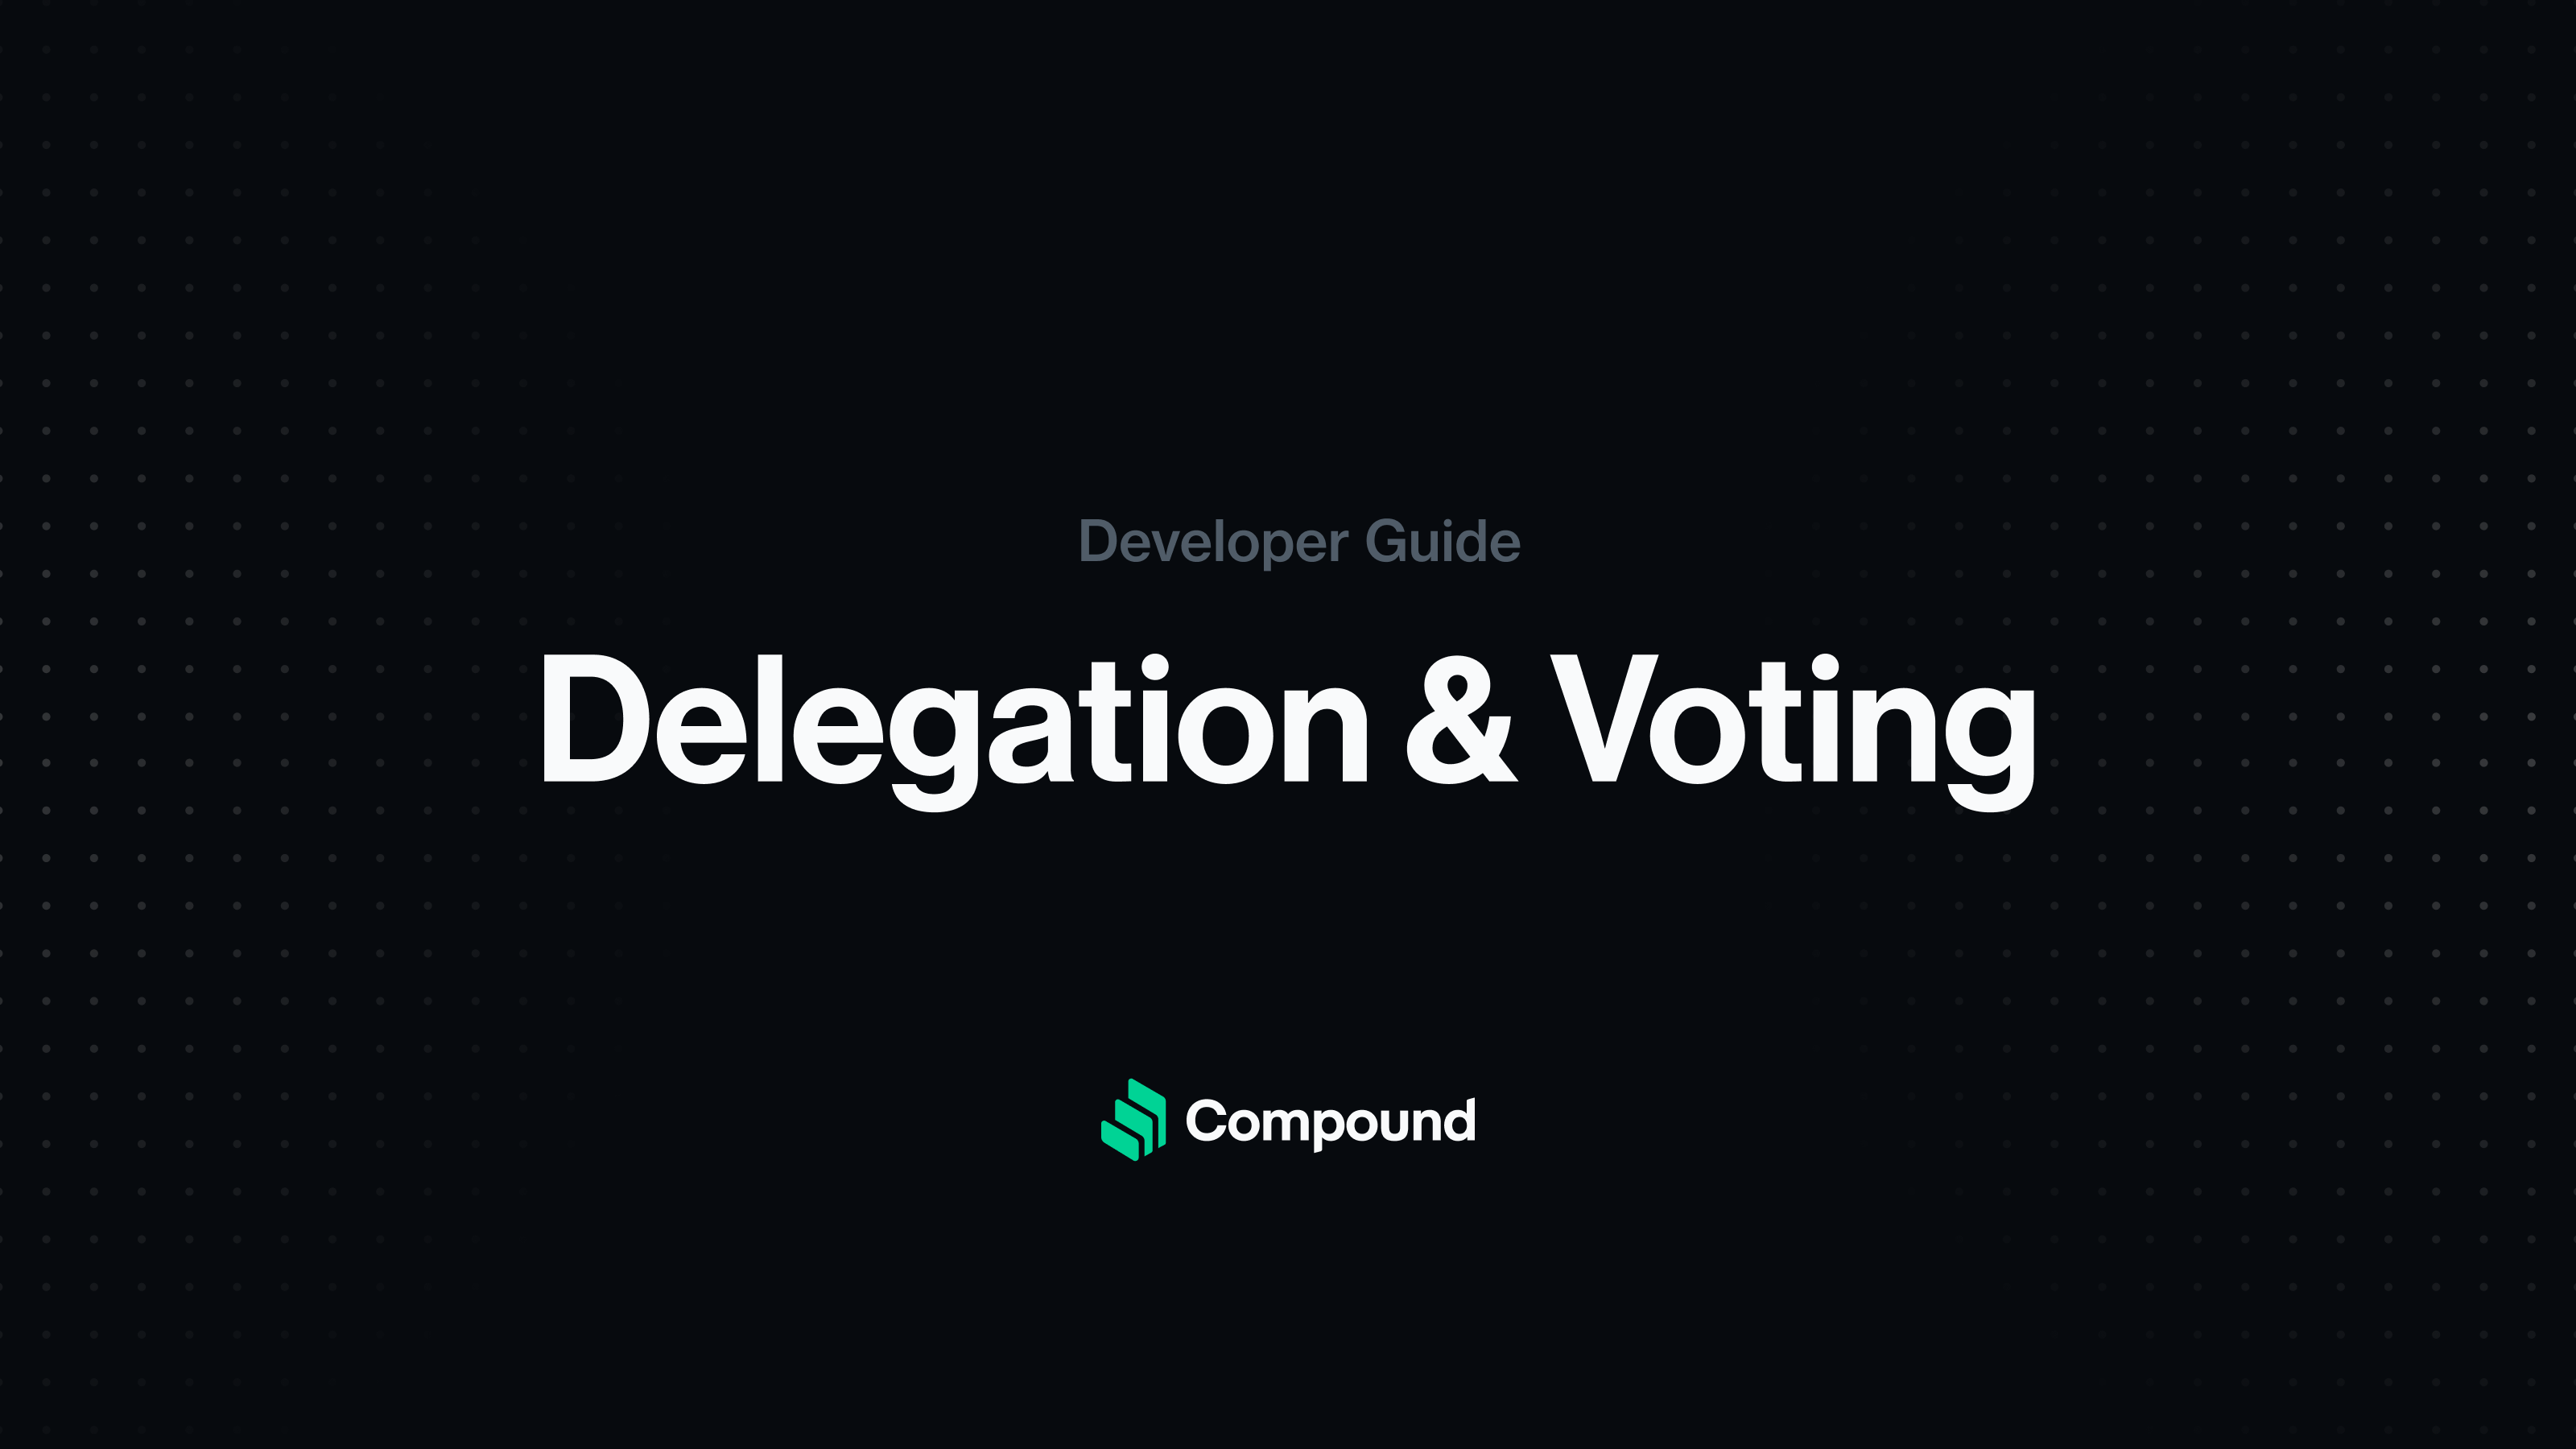 Code examples for Compound protocol delegation and voting by signature with EIP-712